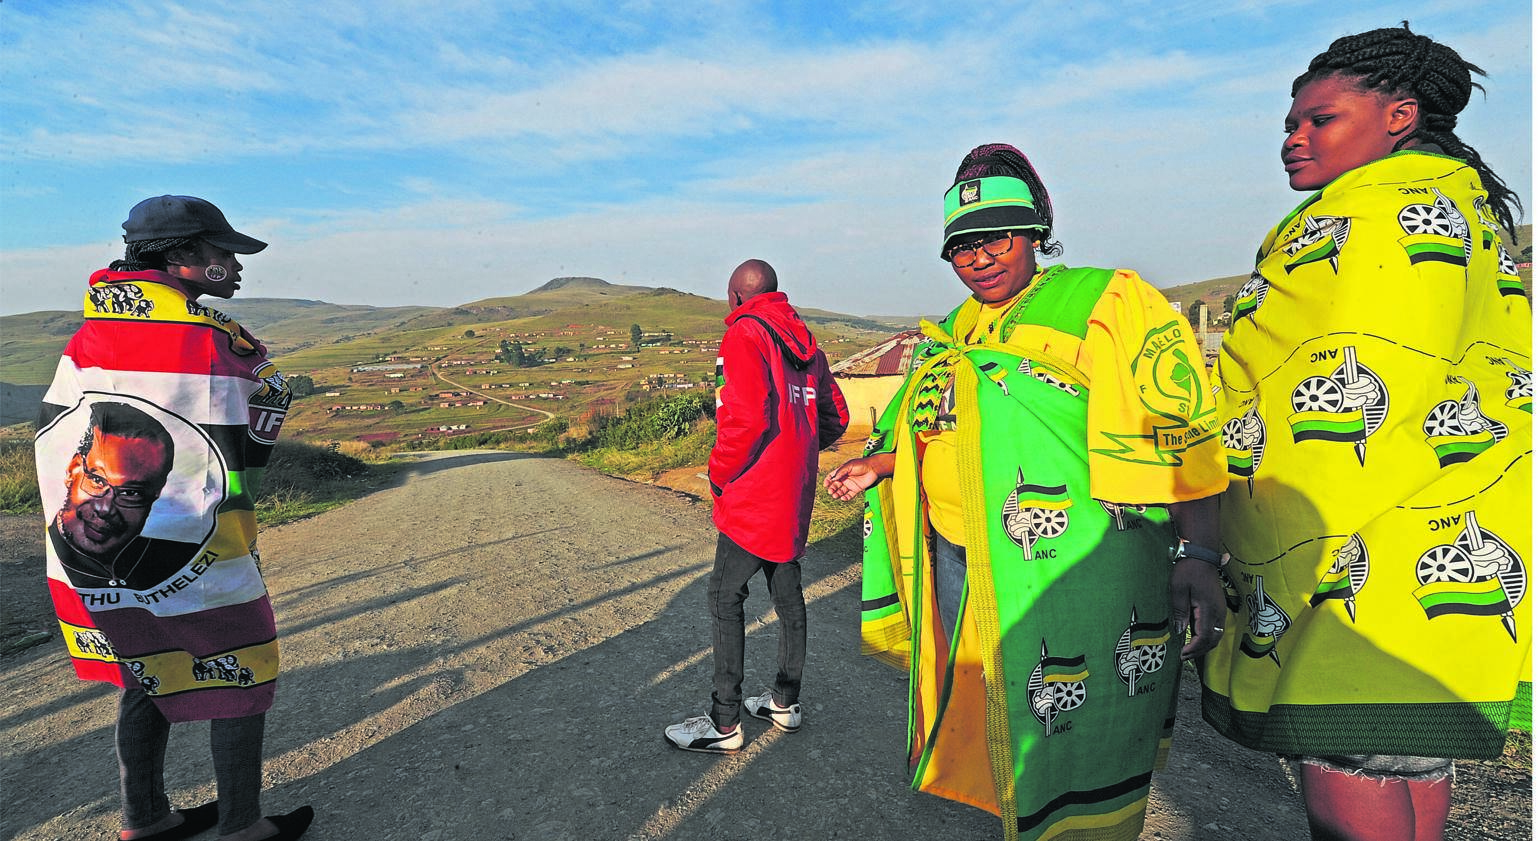 In an area once characterised by political intolerance but now peaceful, ANC and IFP supporters (from left), Fortunate Duma, Nonjabulo Langa and Thabisile Ndlovu walk to vote in Elandskop on Wednesday.